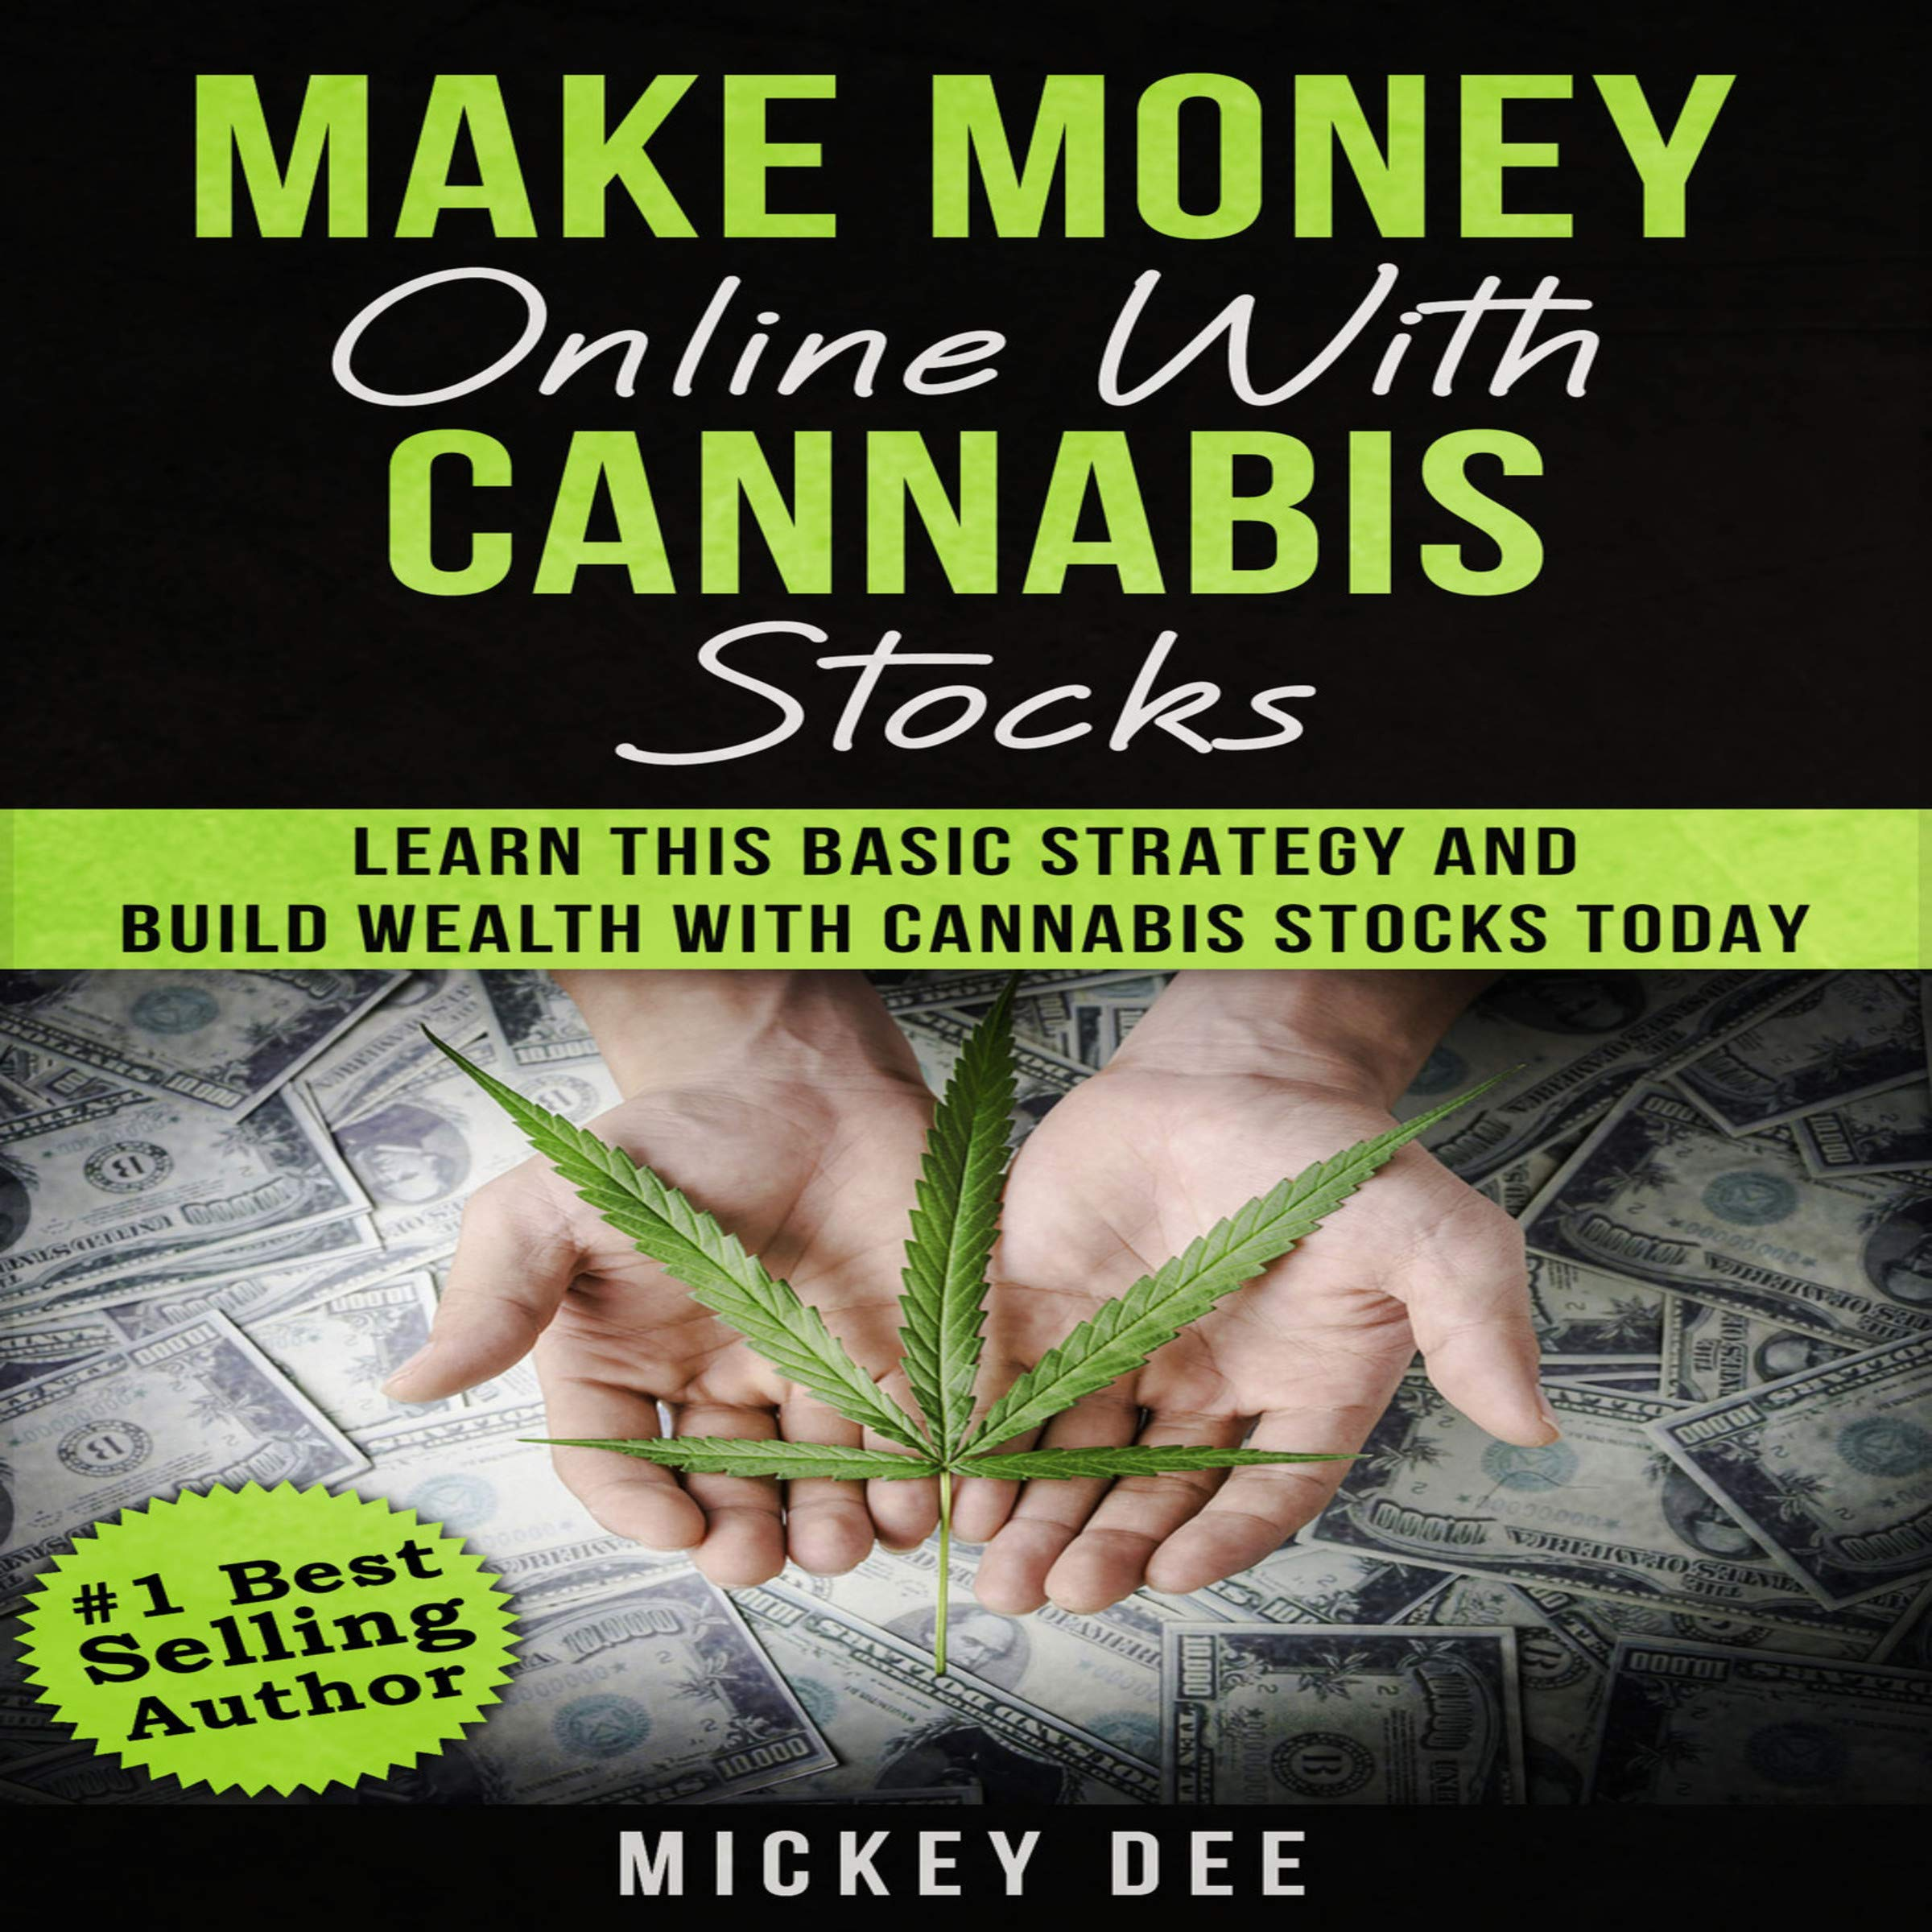 Image OfMake Money Online With Cannabis Stocks: Learn This Basic Strategy And Build Wealth With Cannabis Stocks Today